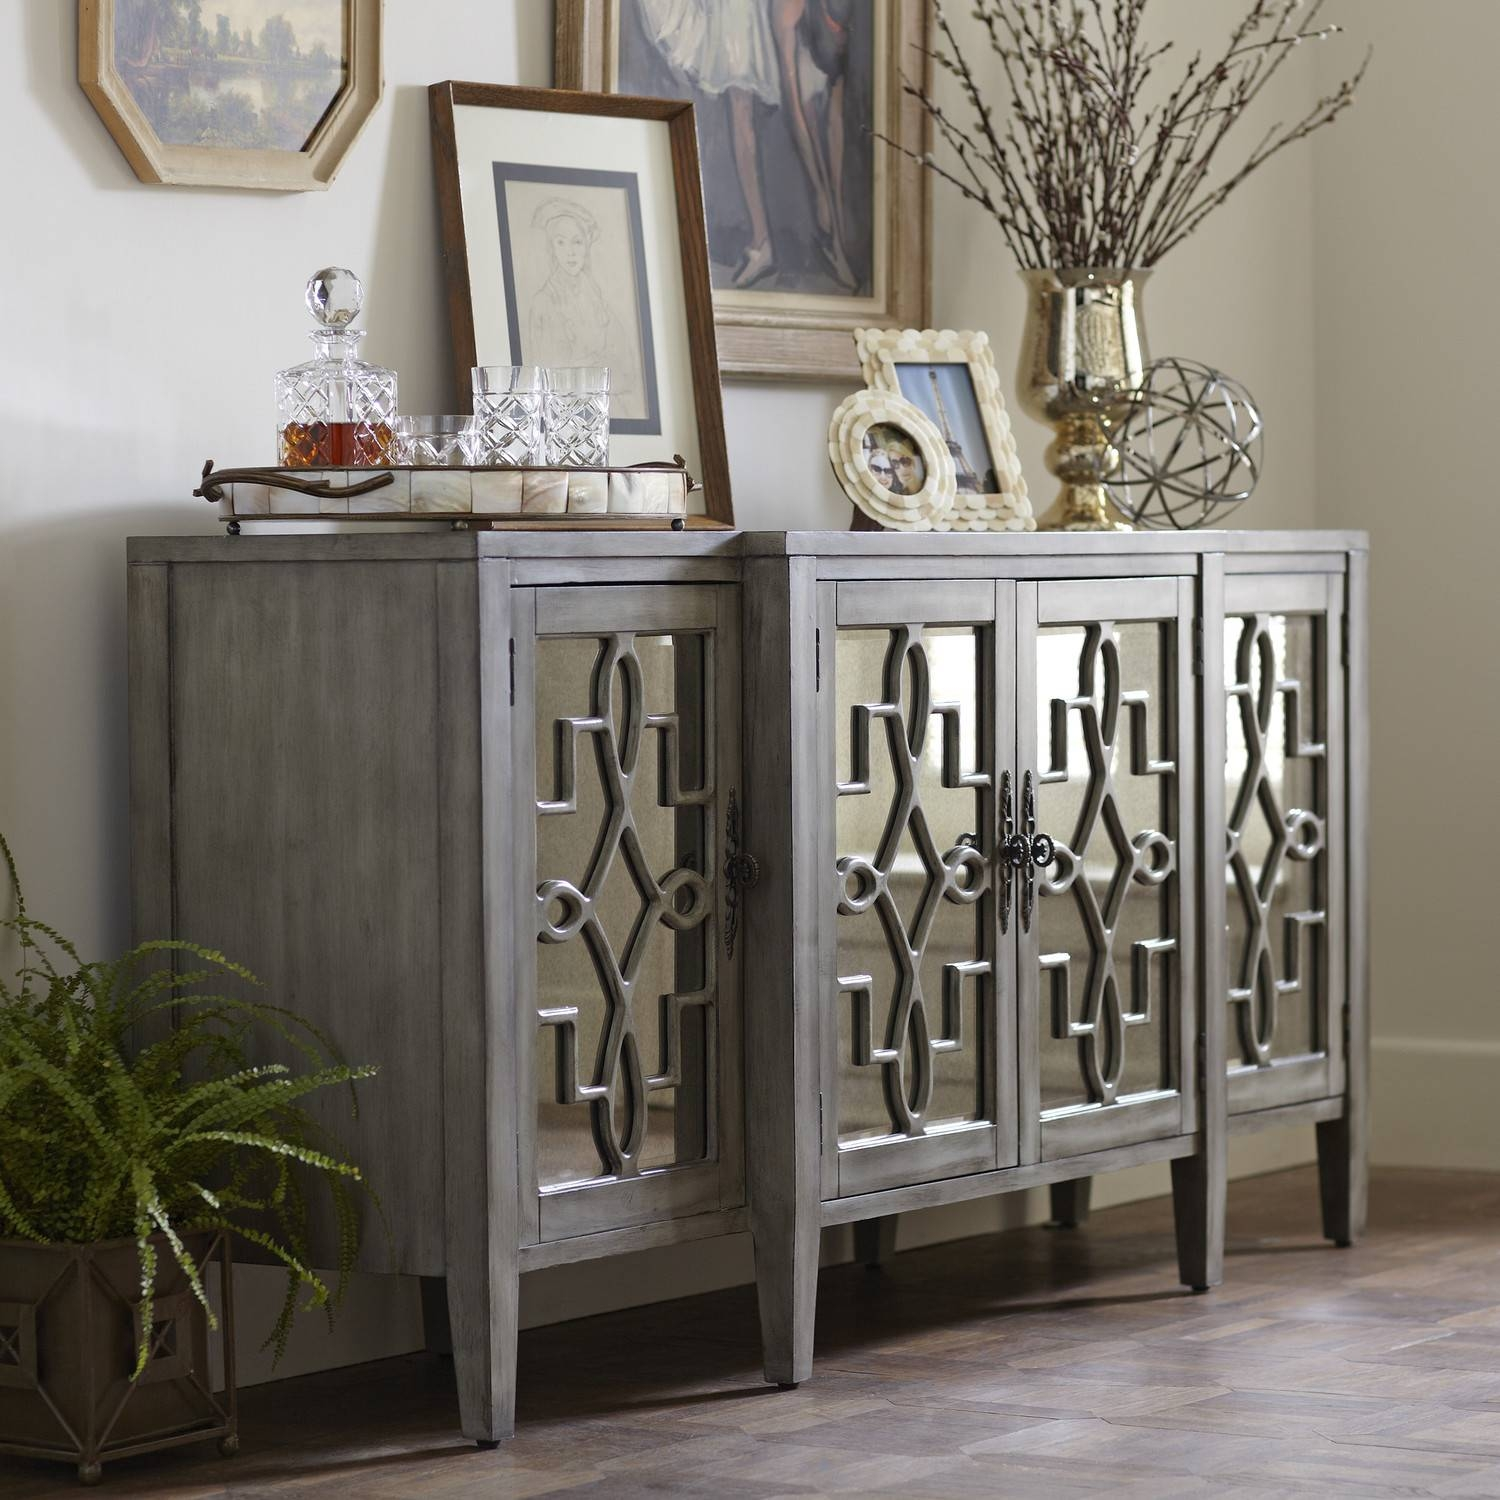 Long Narrow Sideboards And Buffets — New Decoration : Shopping For regarding Long Narrow Sideboards (Image 11 of 30)